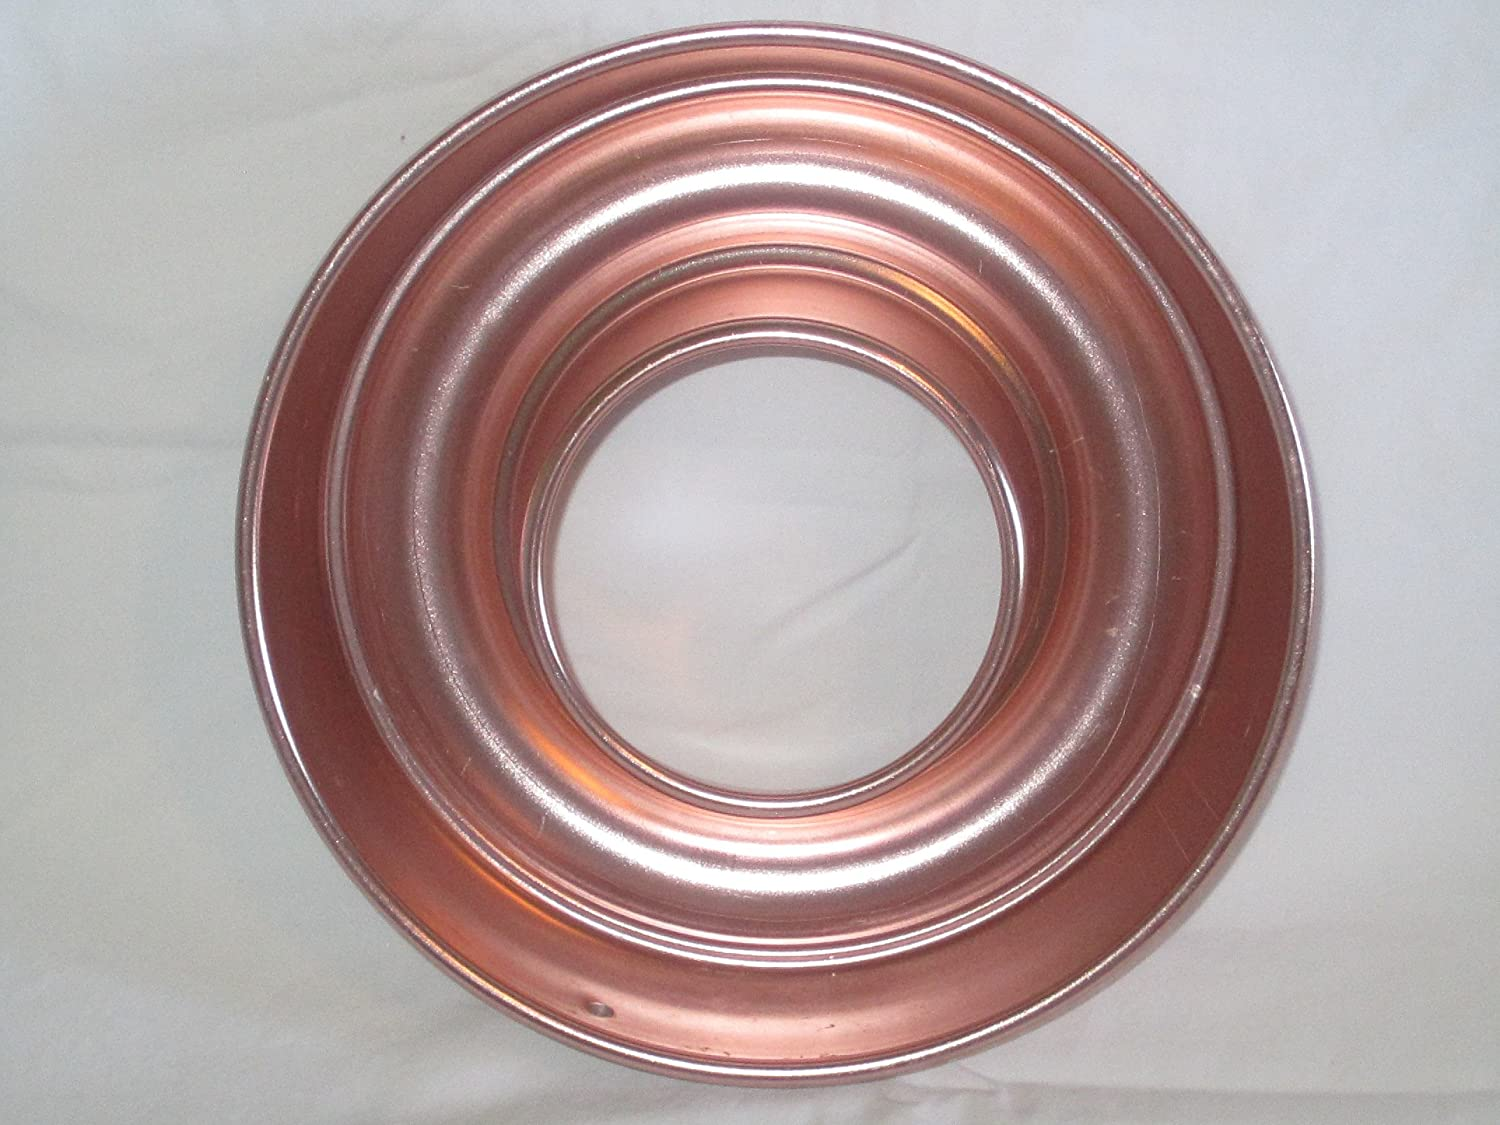 Vintage Coppertone 8 x 2 1/4 Inch Metal Ring Jell-o Mold / Cake Baking Pan Unknown